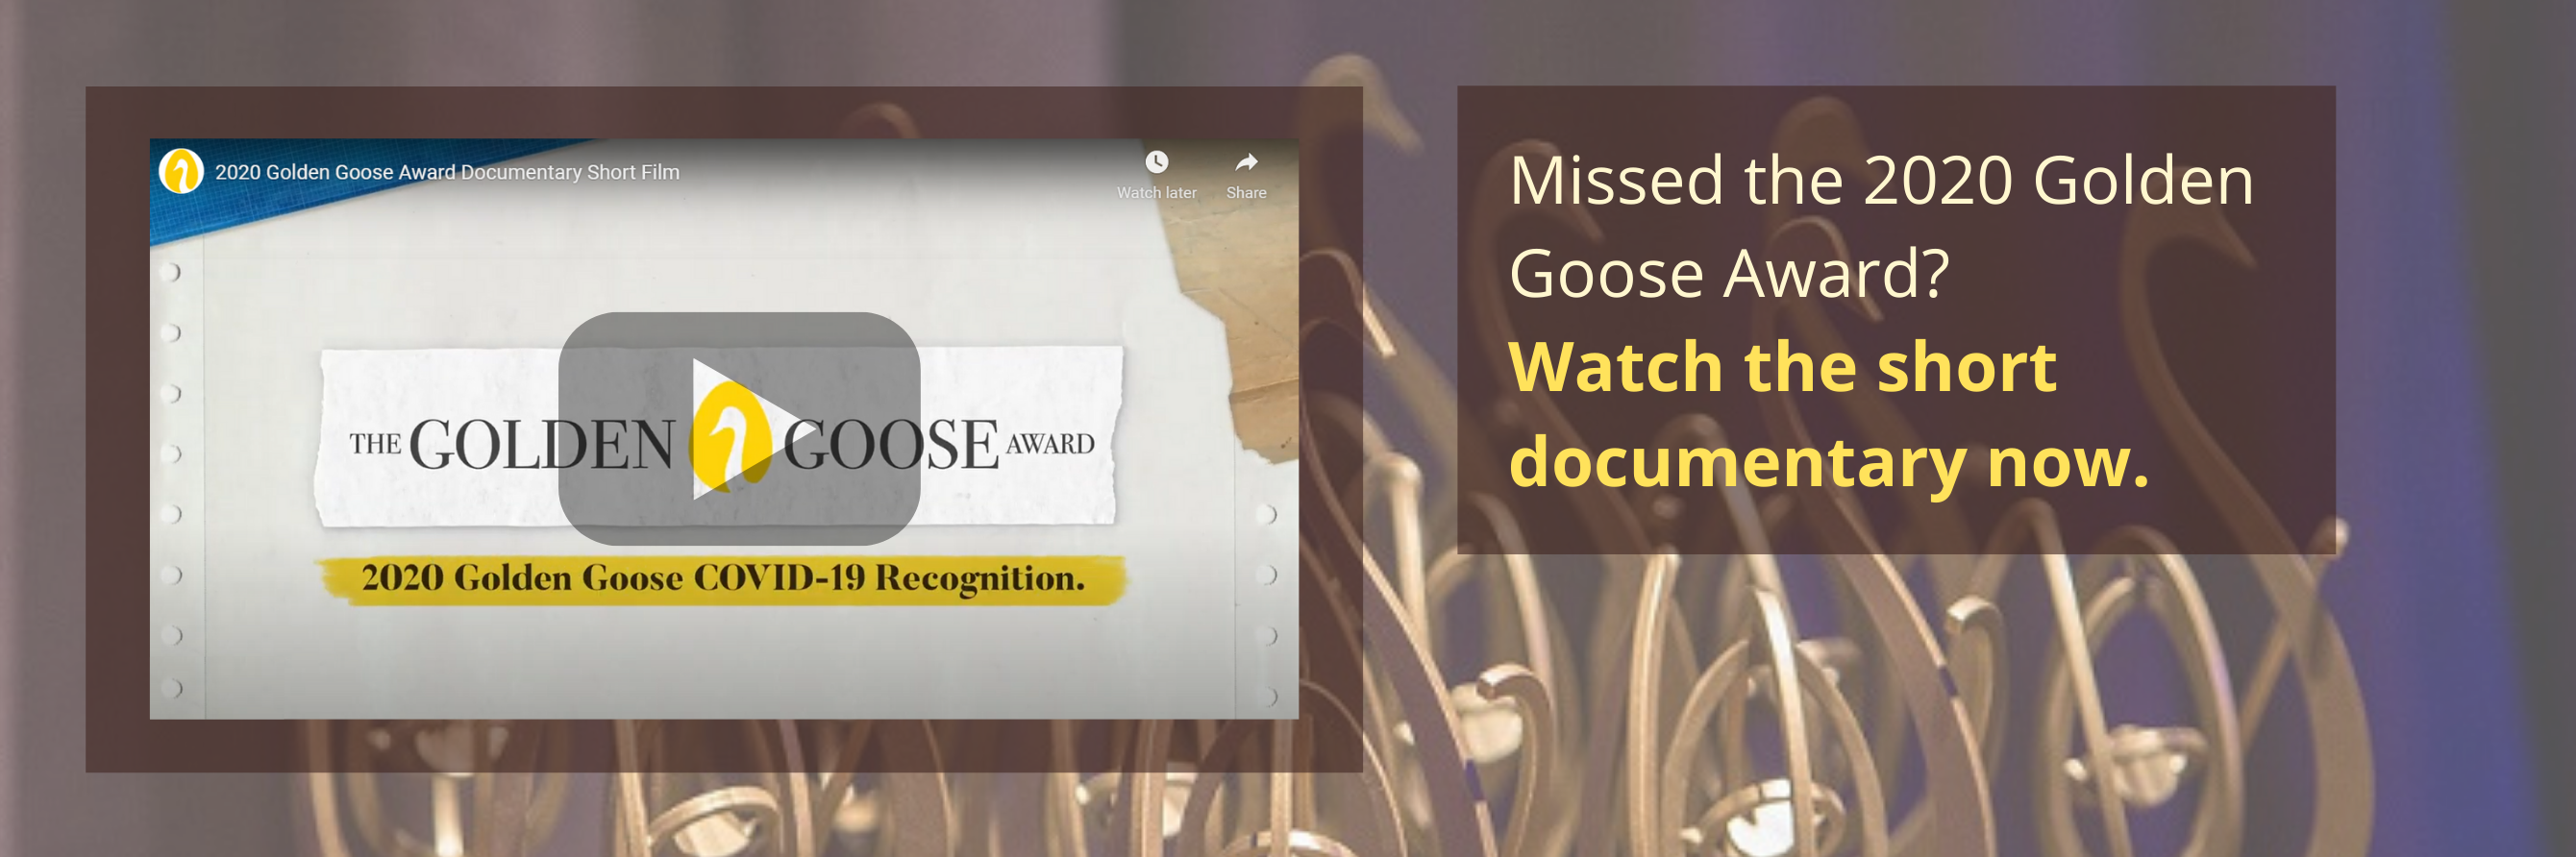 Youtube video of Golden Goose Awards, with text: Missed the 2020 Golden Goose Award? Watch the short documentary now.